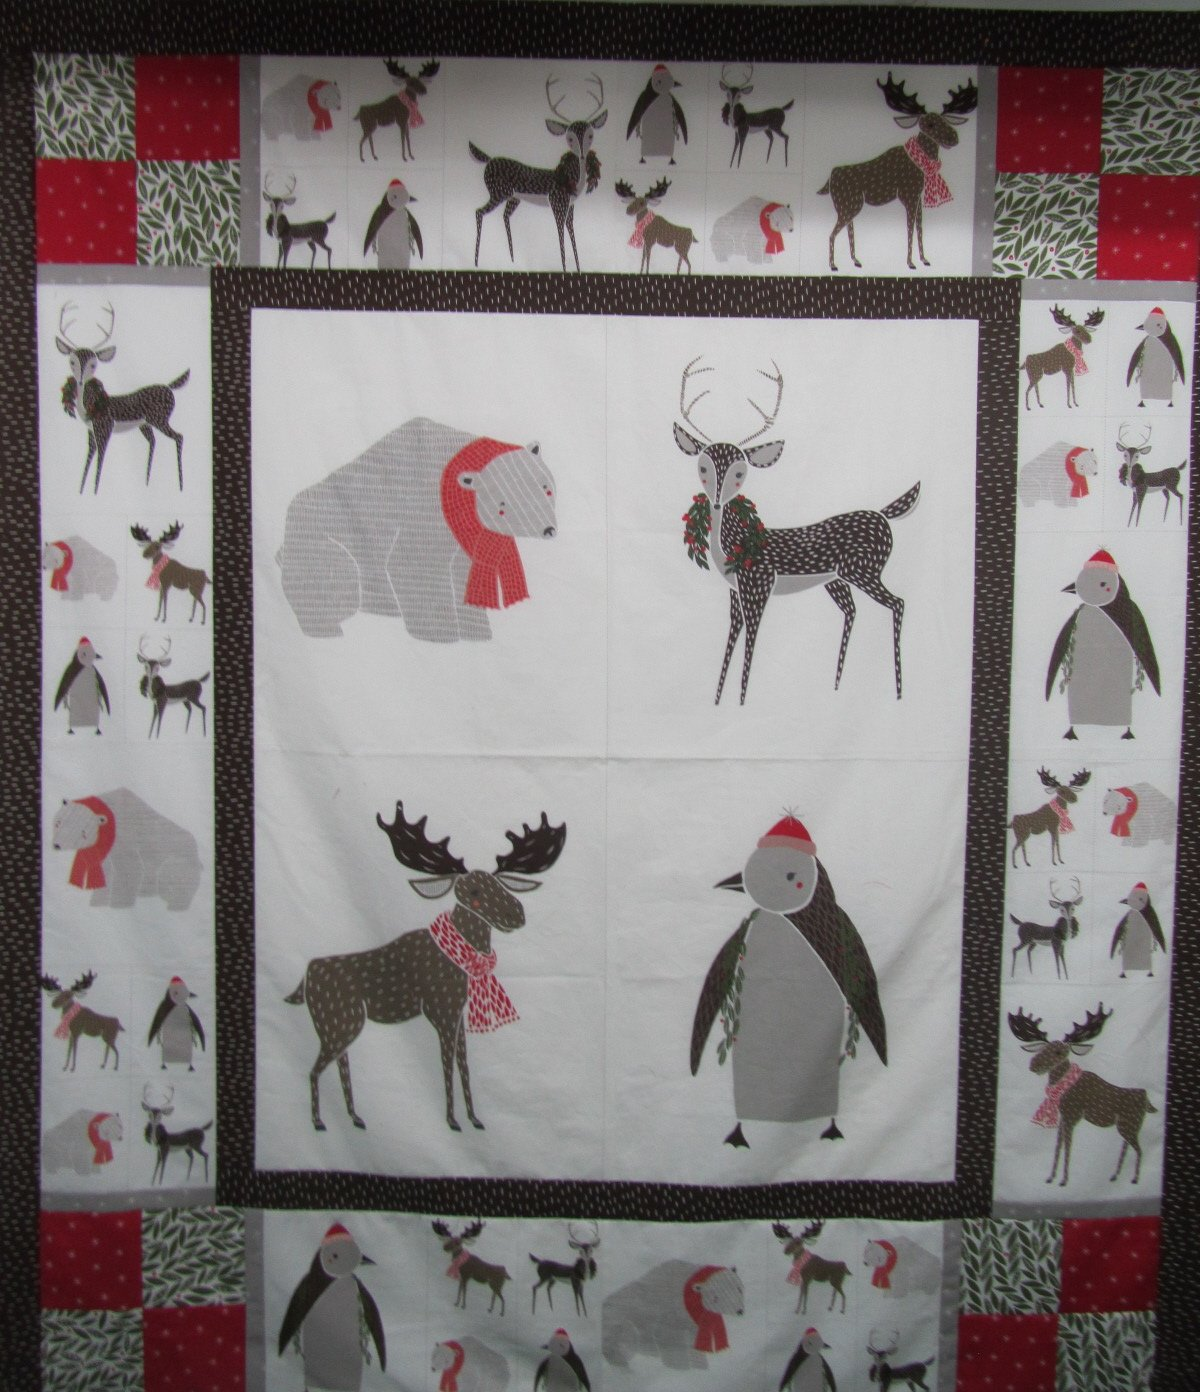 Winter Critters Quilt Kit featuring Merrily by Gingiber for Moda